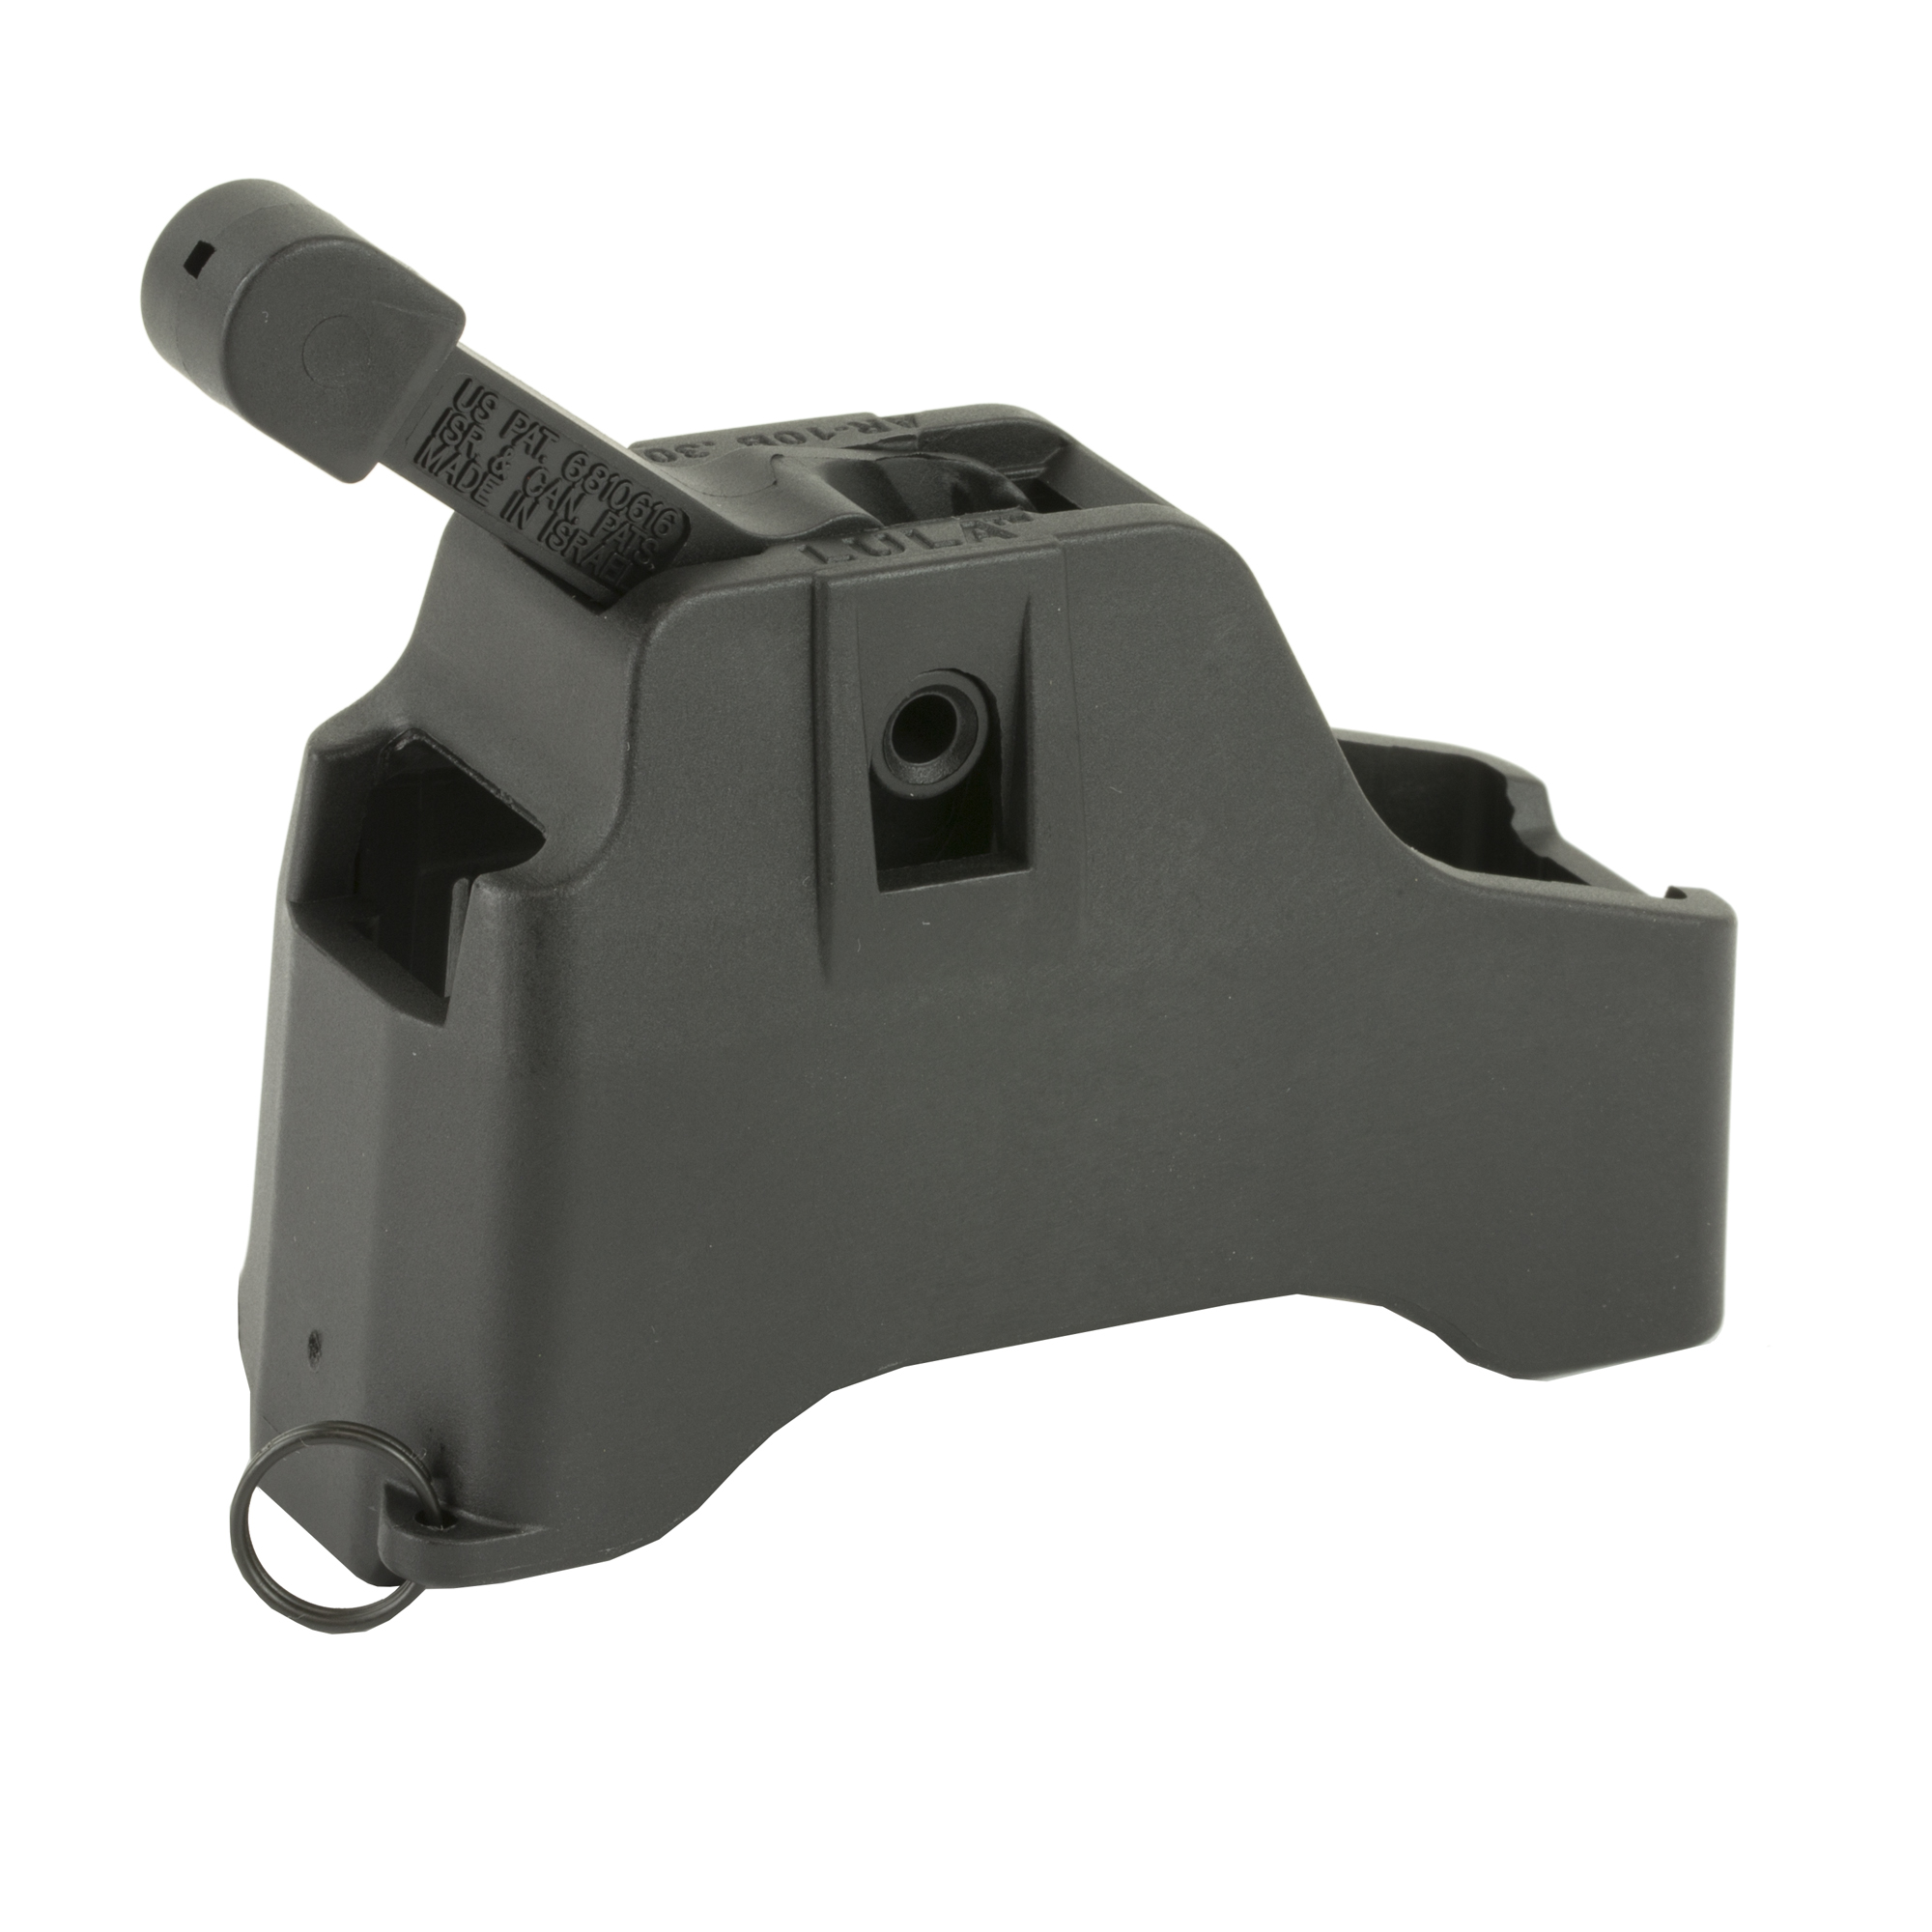 """Since 2001"""" Maglula has manufactured professional military-grade tools for loading and unloading magazines. These products save valuable time at the range"""" field"""" armory and prevent pain associated with loading and unloading magazines. They also prevent damage to the magazine lips"""" therefore reducing weapon jams."""